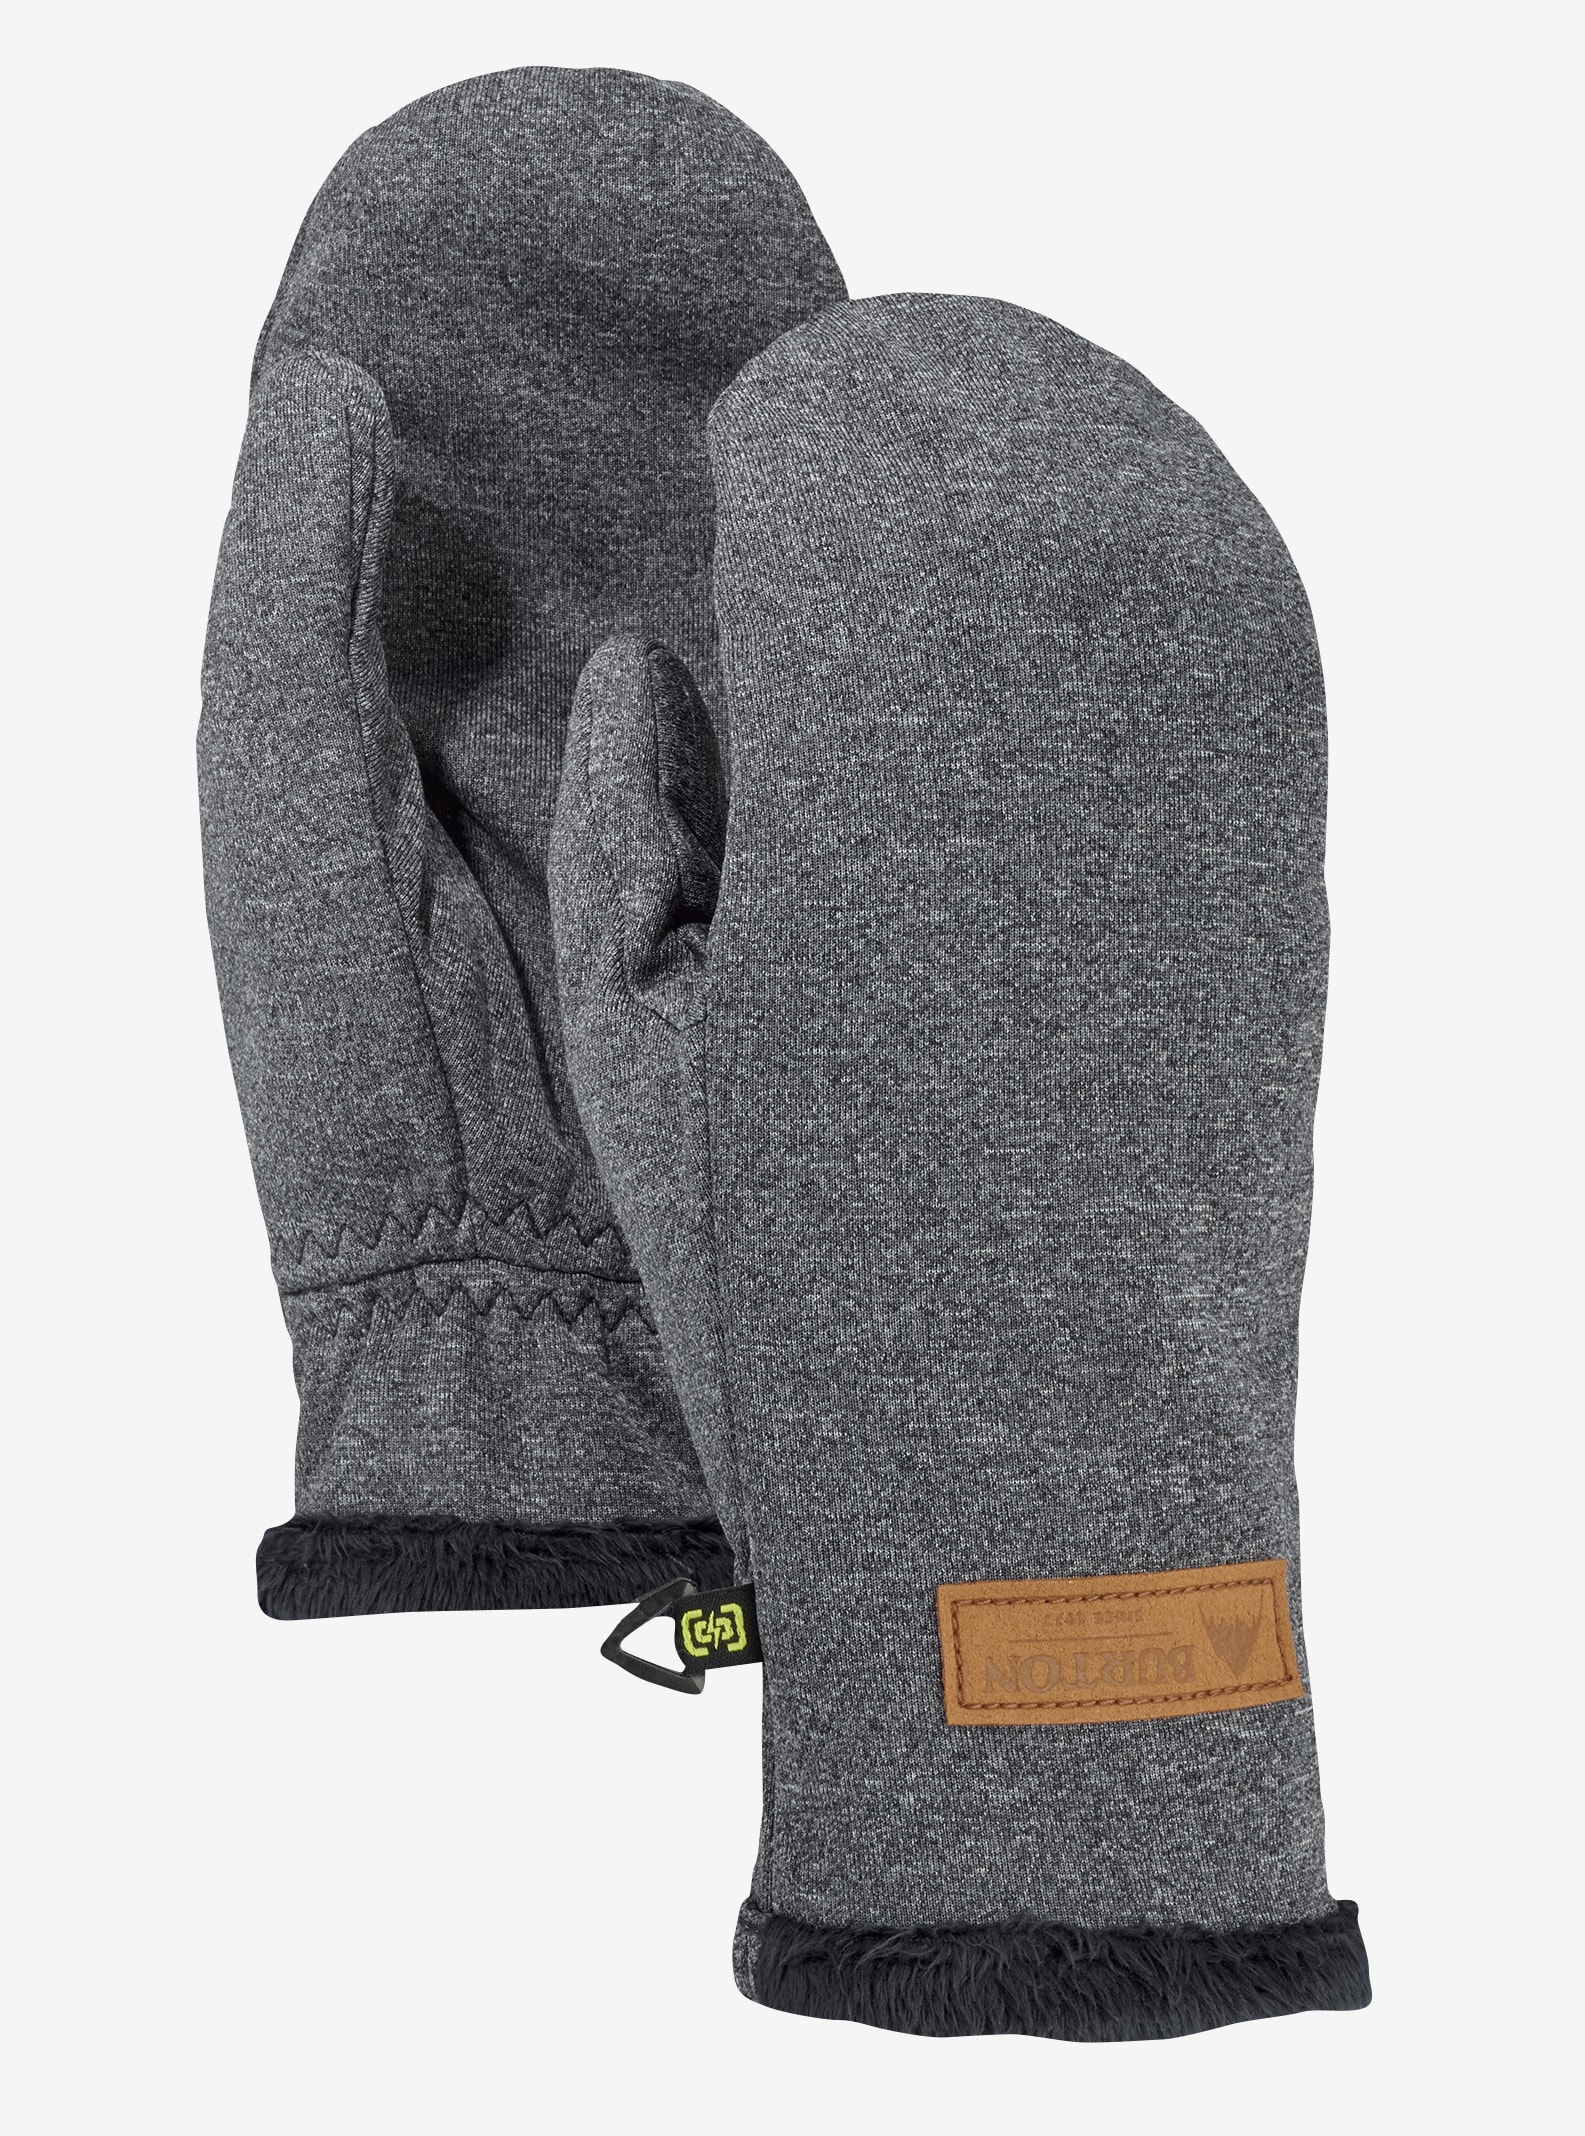 Women's Burton Sapphire Mitt shown in True Black Heather